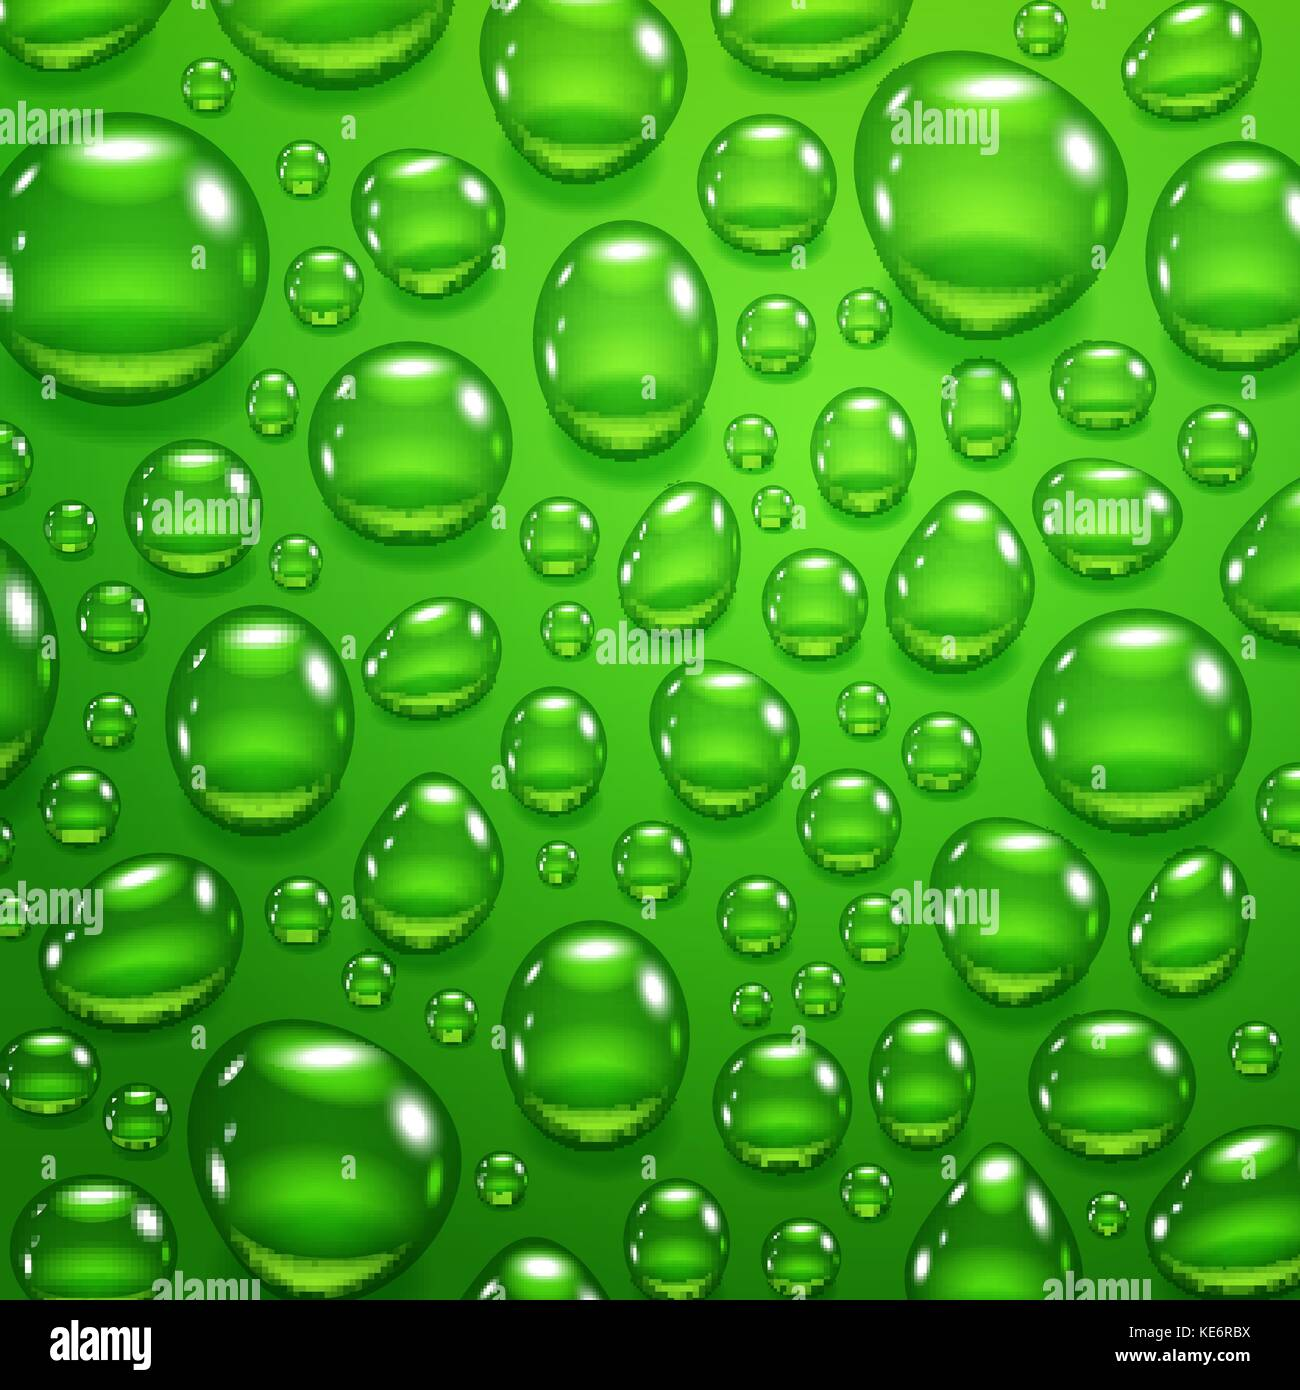 Water drops on green background - Stock Vector